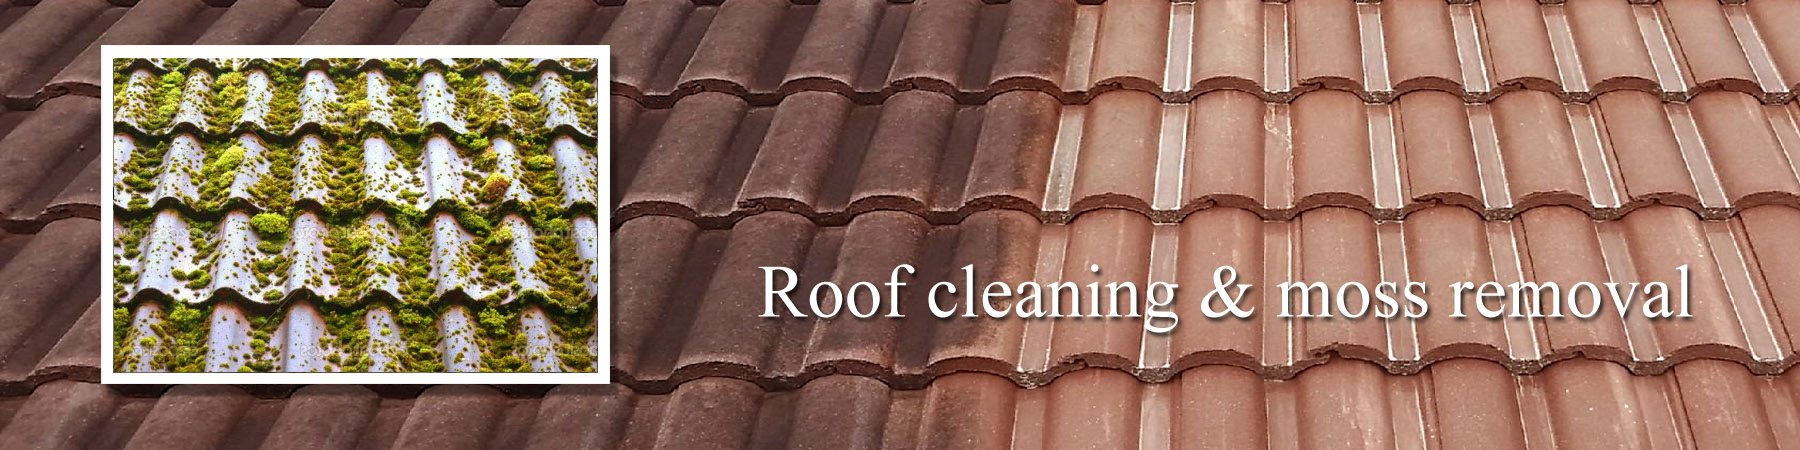 J.R. Roof Cleaning Sidcup roof moss removal repairs & coating J R Cleaning